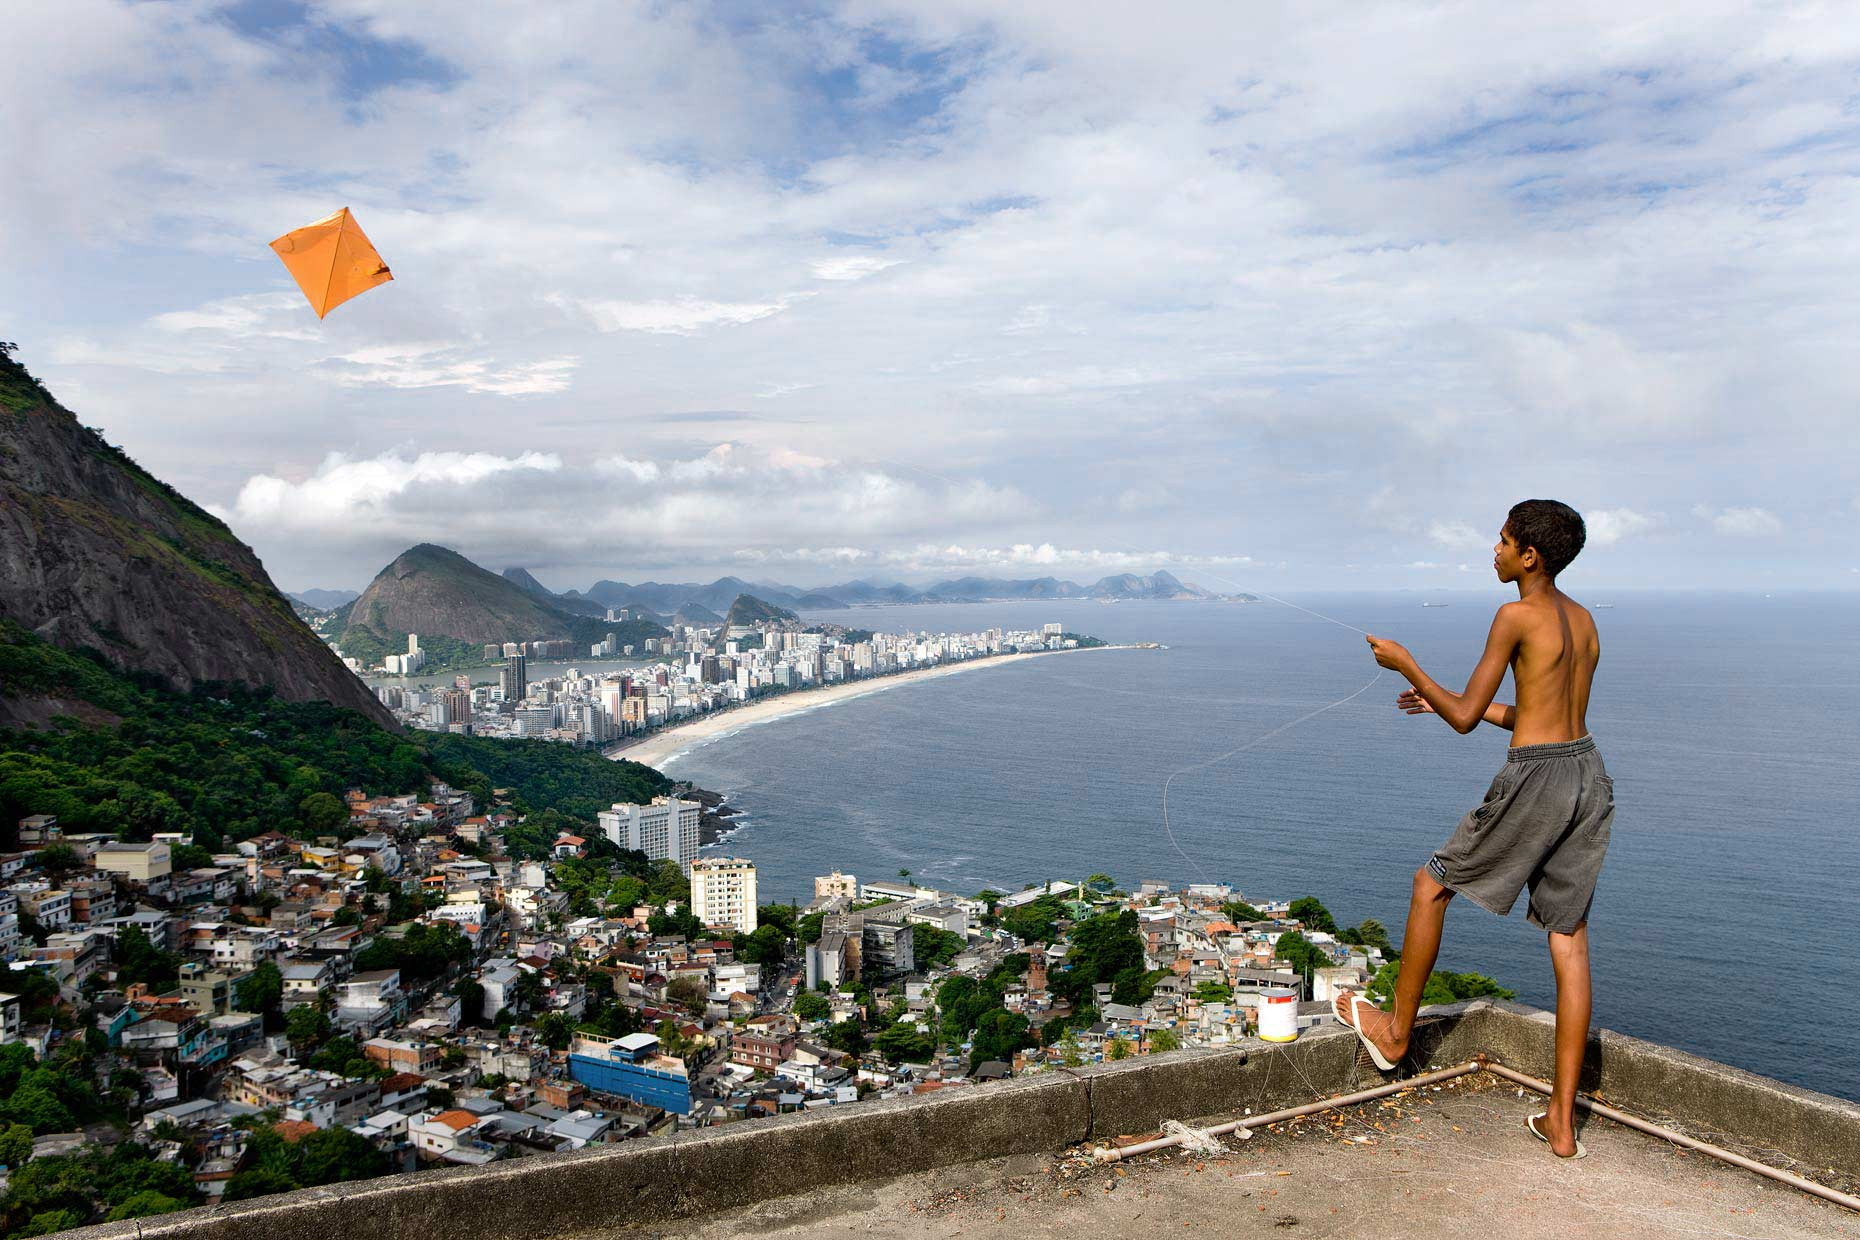 Boy playing with kite with view of Rio de jainero behind him